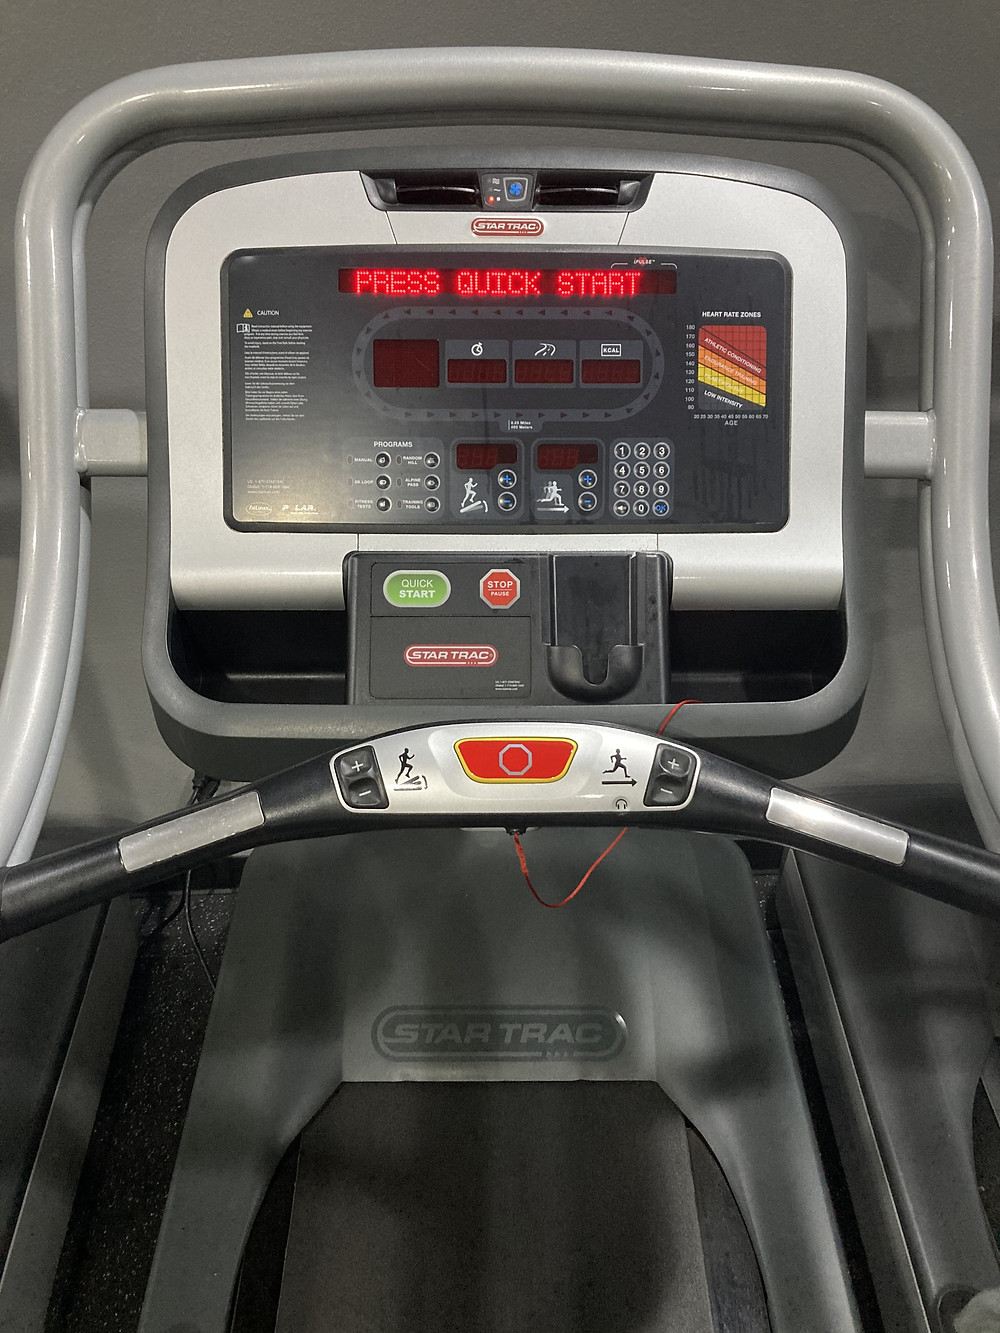 Max out incline, track your calories and time with our treadmills.